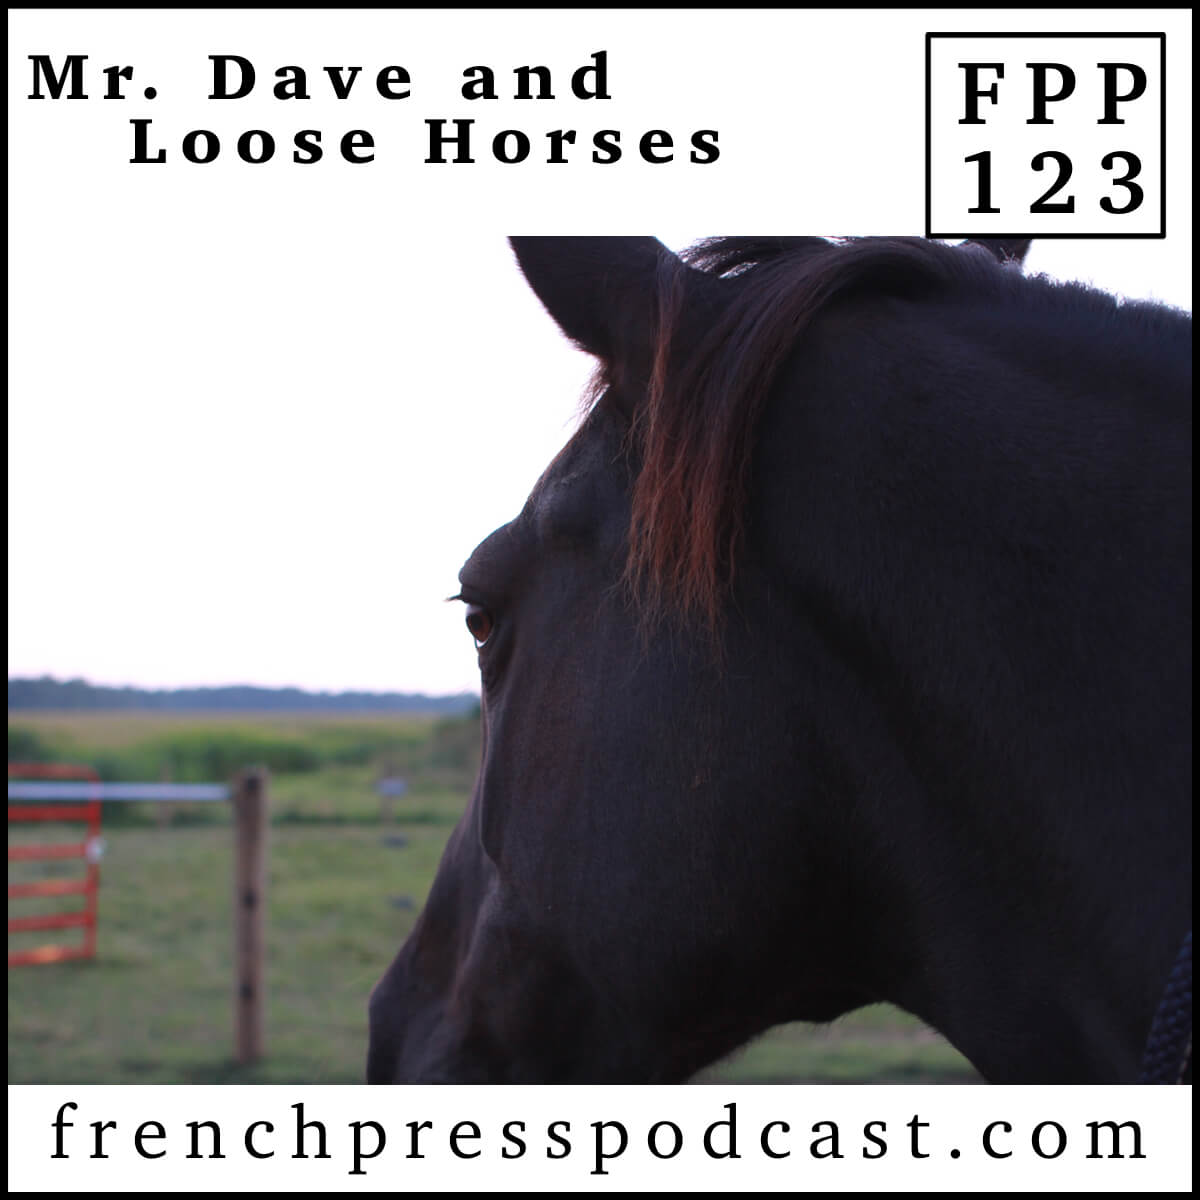 Mr. Dave and Loose Horses